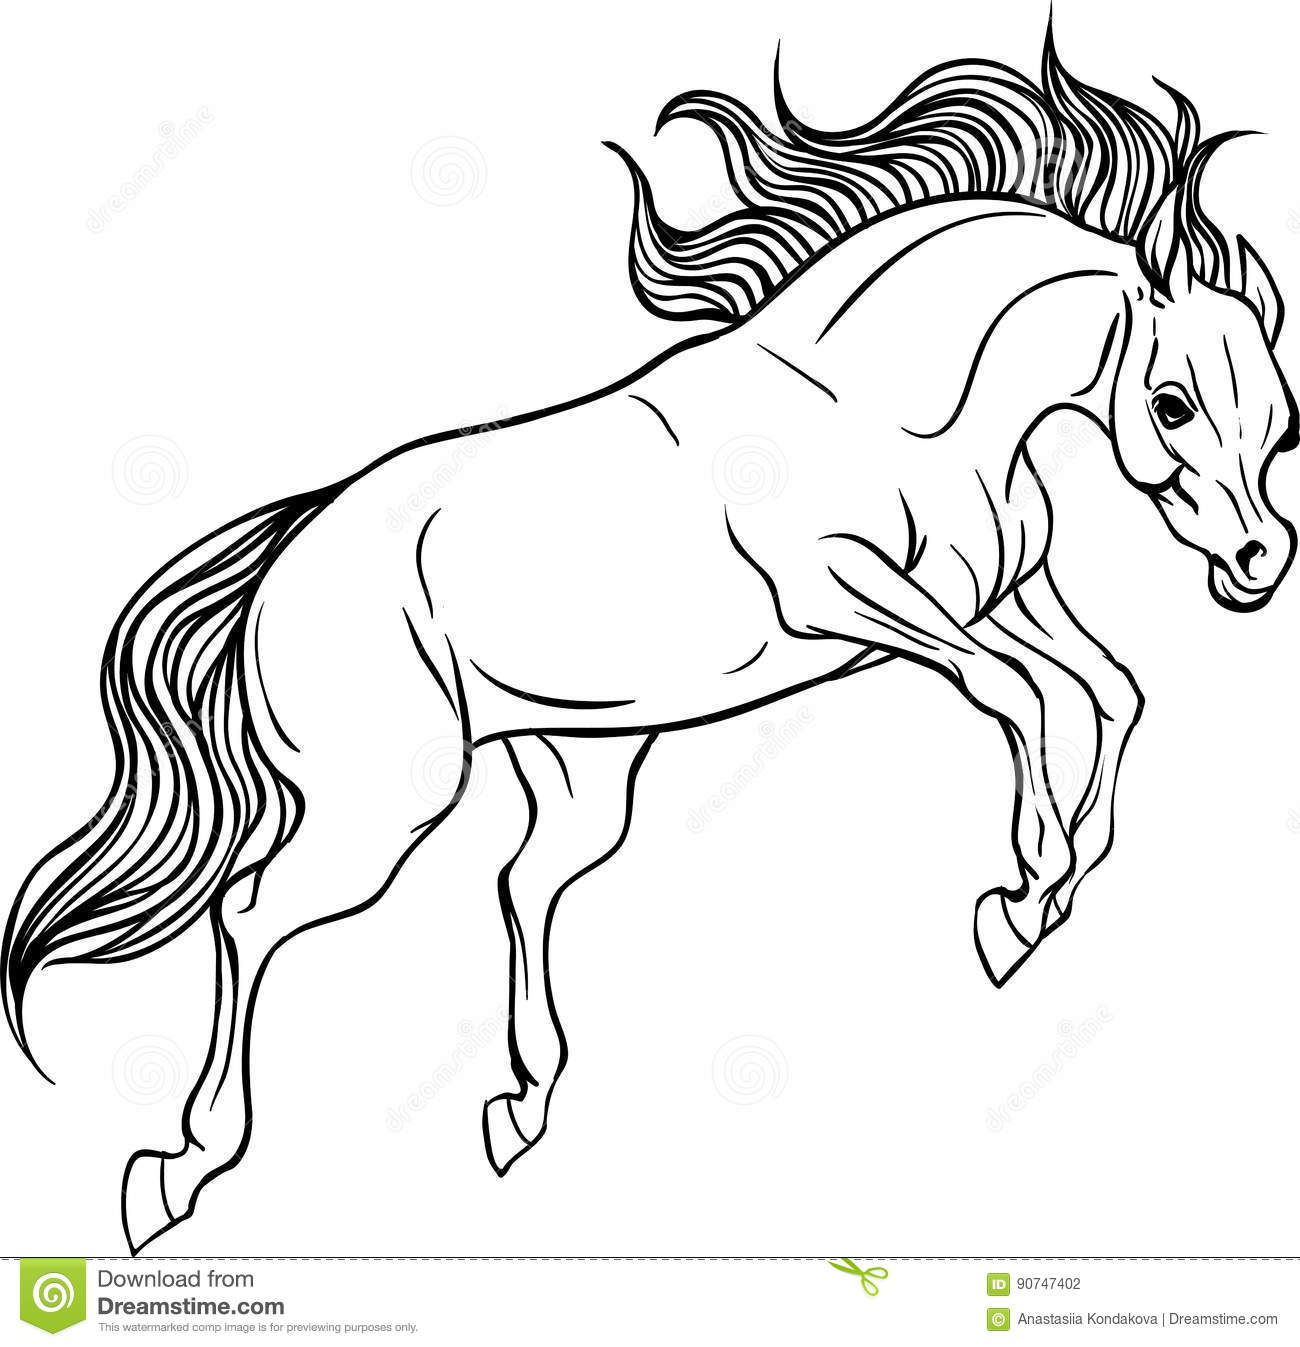 Adult Coloring Page Horse Stock Vector Illustration Of Background